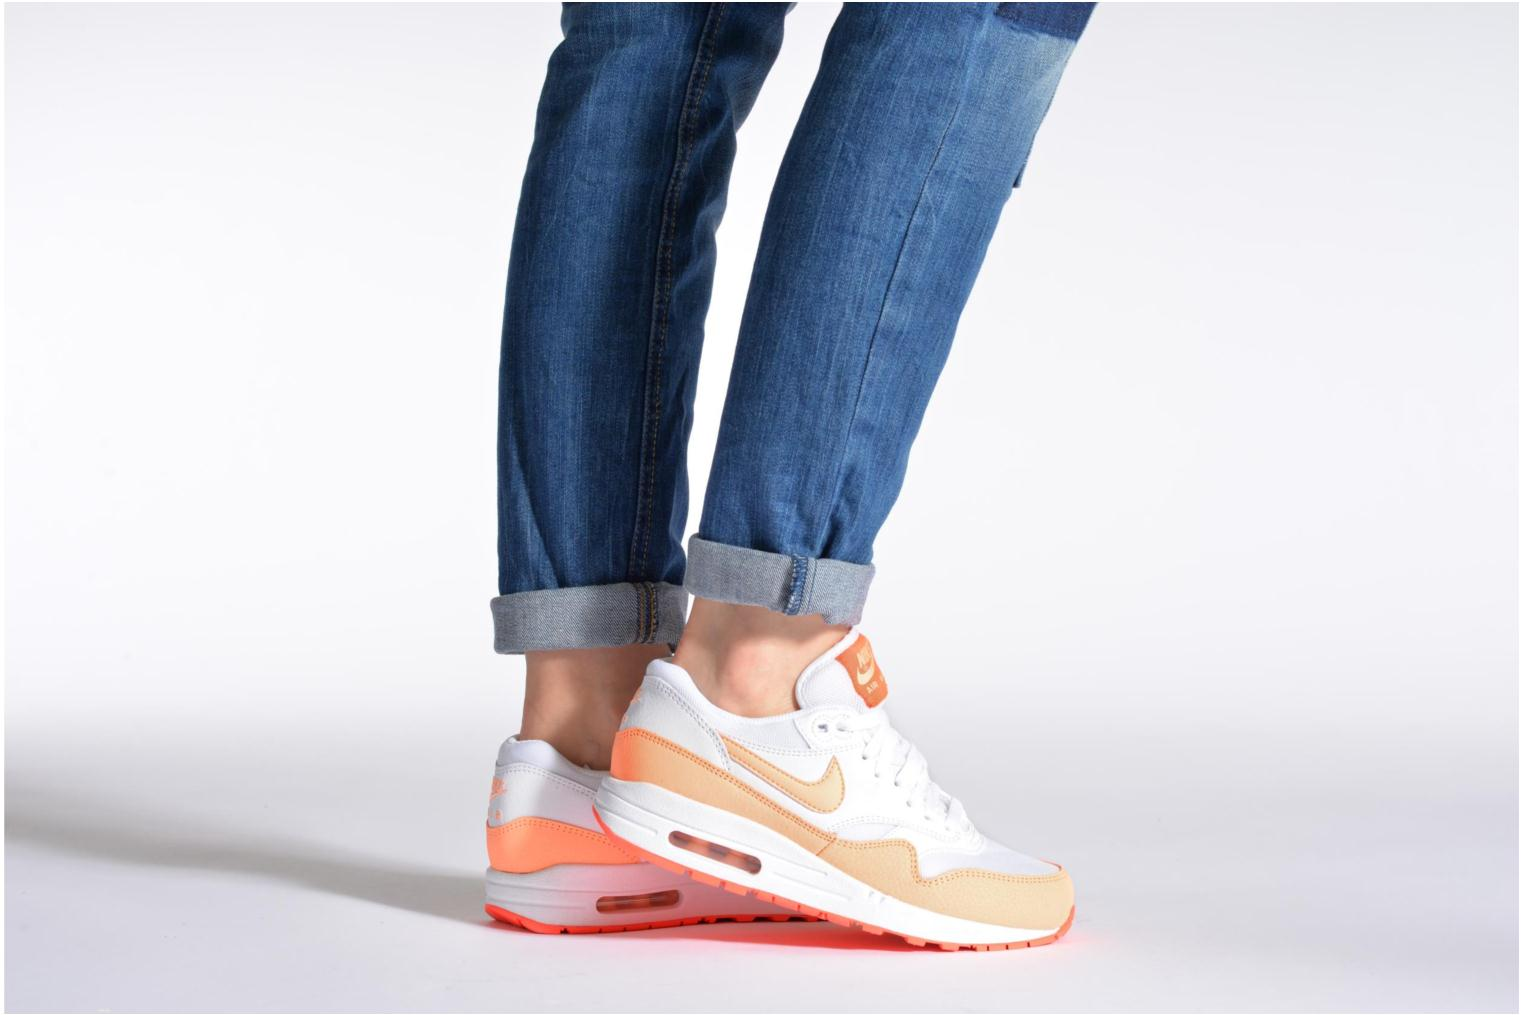 Wmns Air Max 1 Essential White/Sunset Glow-Hot Lava